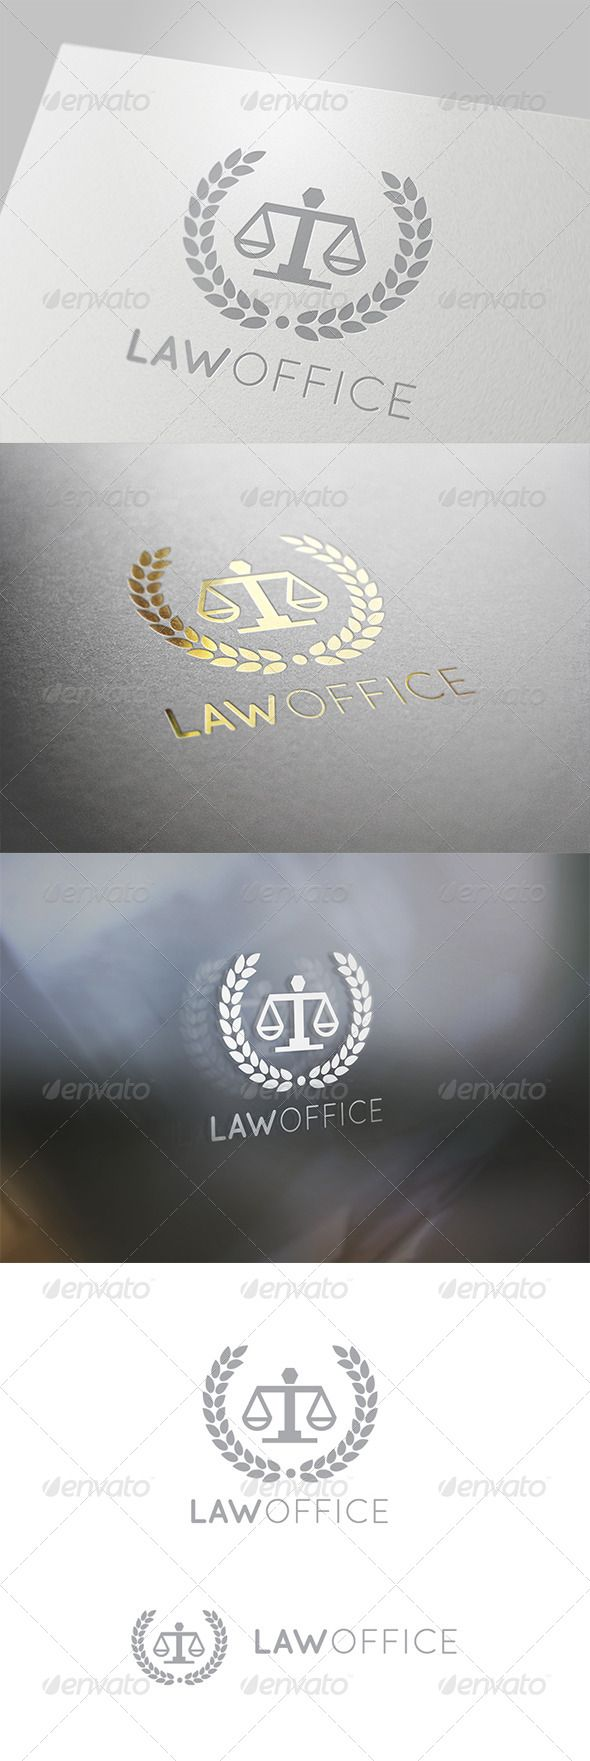 1000  ideas about law firm logo on pinterest